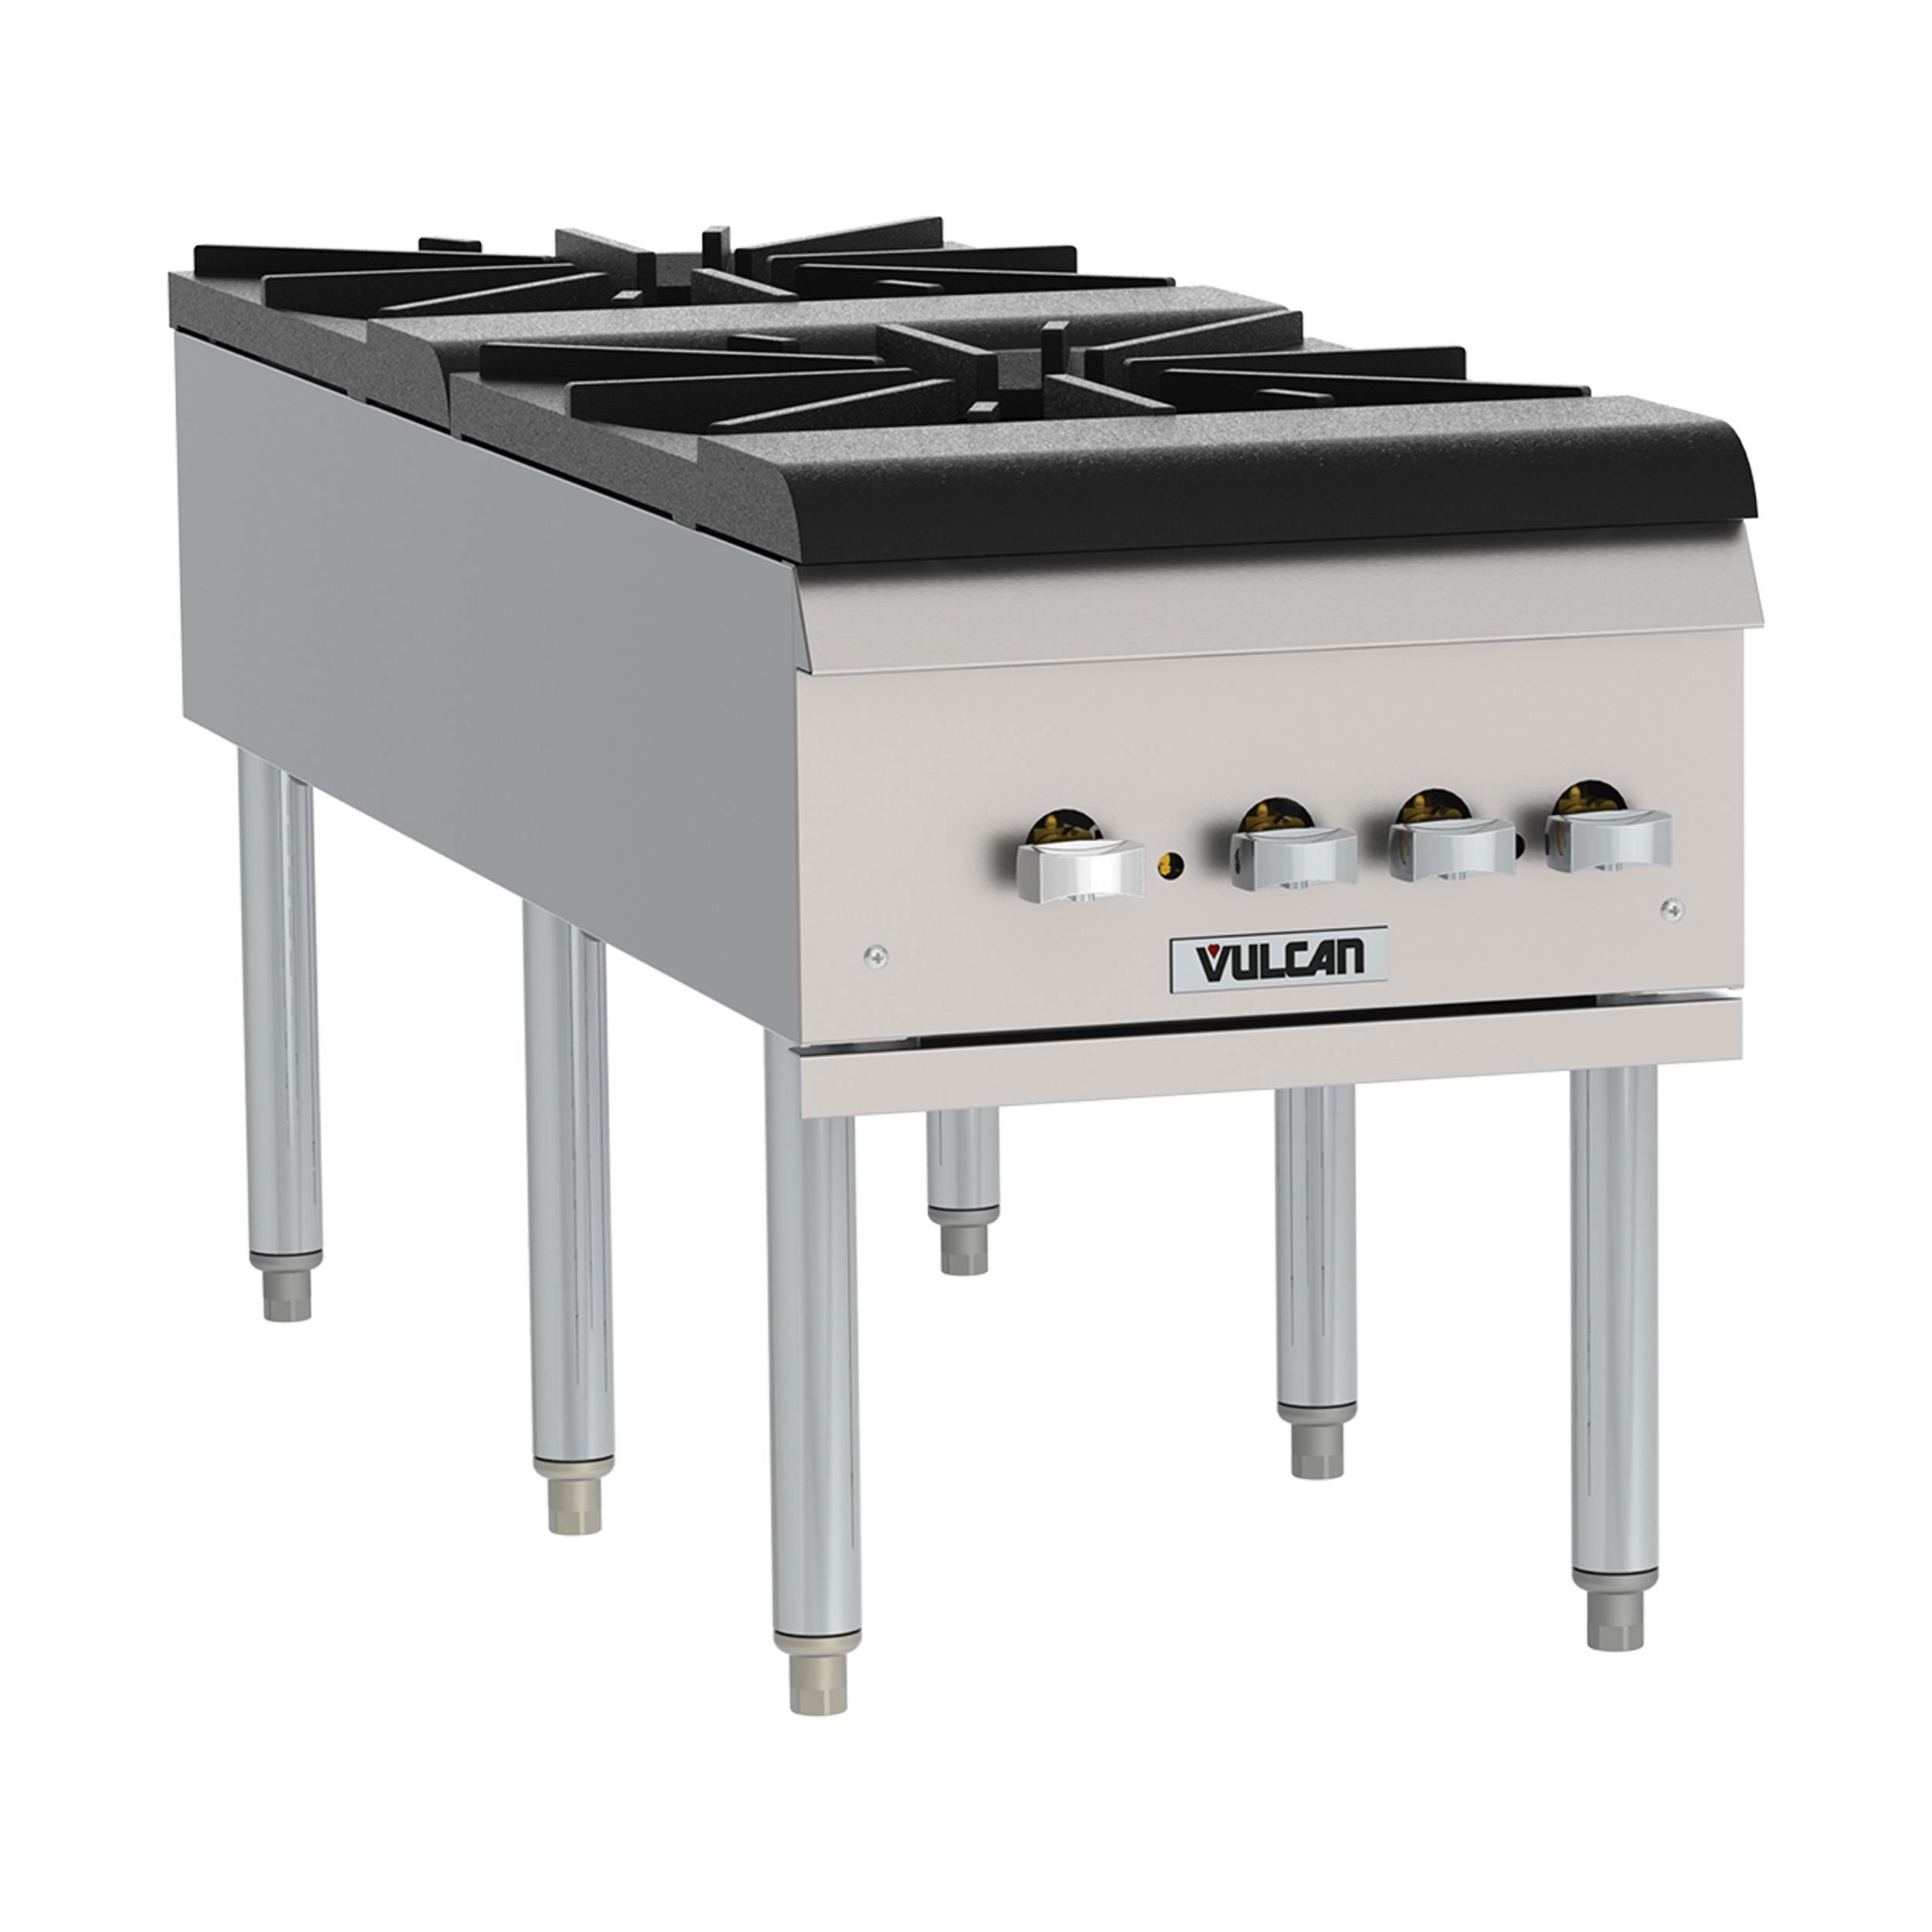 Vulcan VSP200F range, stock pot, gas